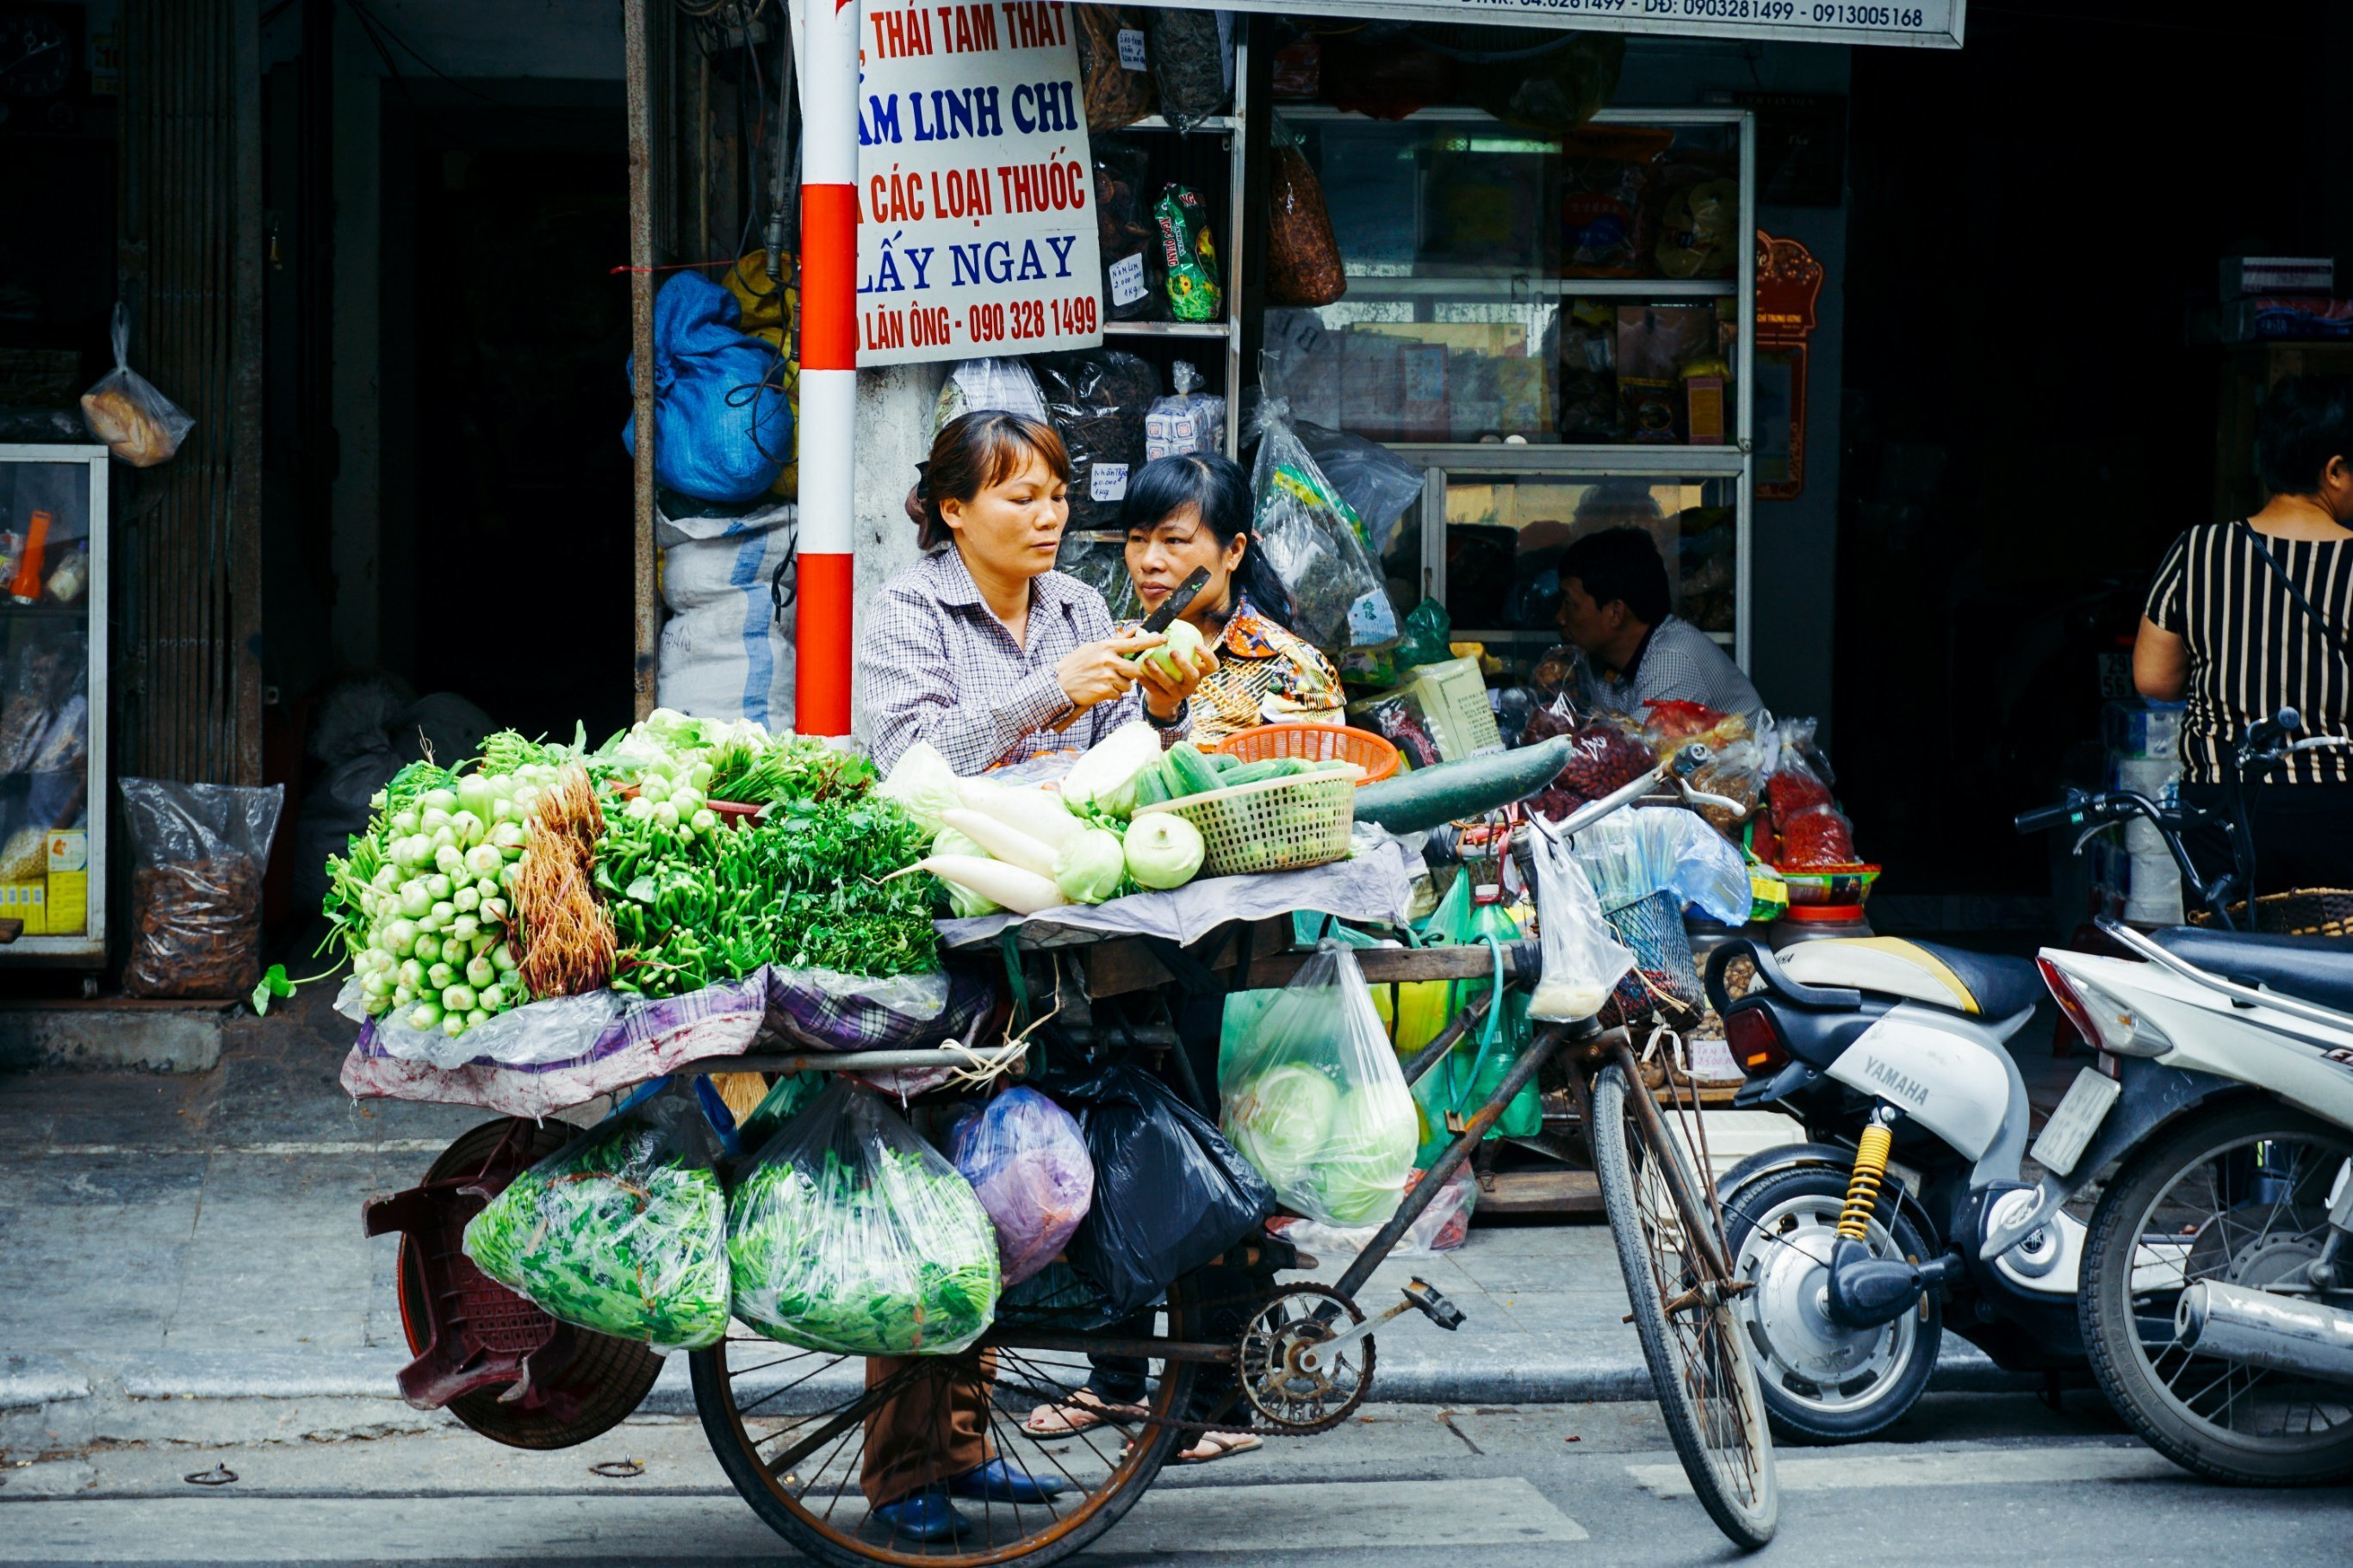 1-Day Sights & Scents of Ho Chi Minh City - Vietnam Itinerary